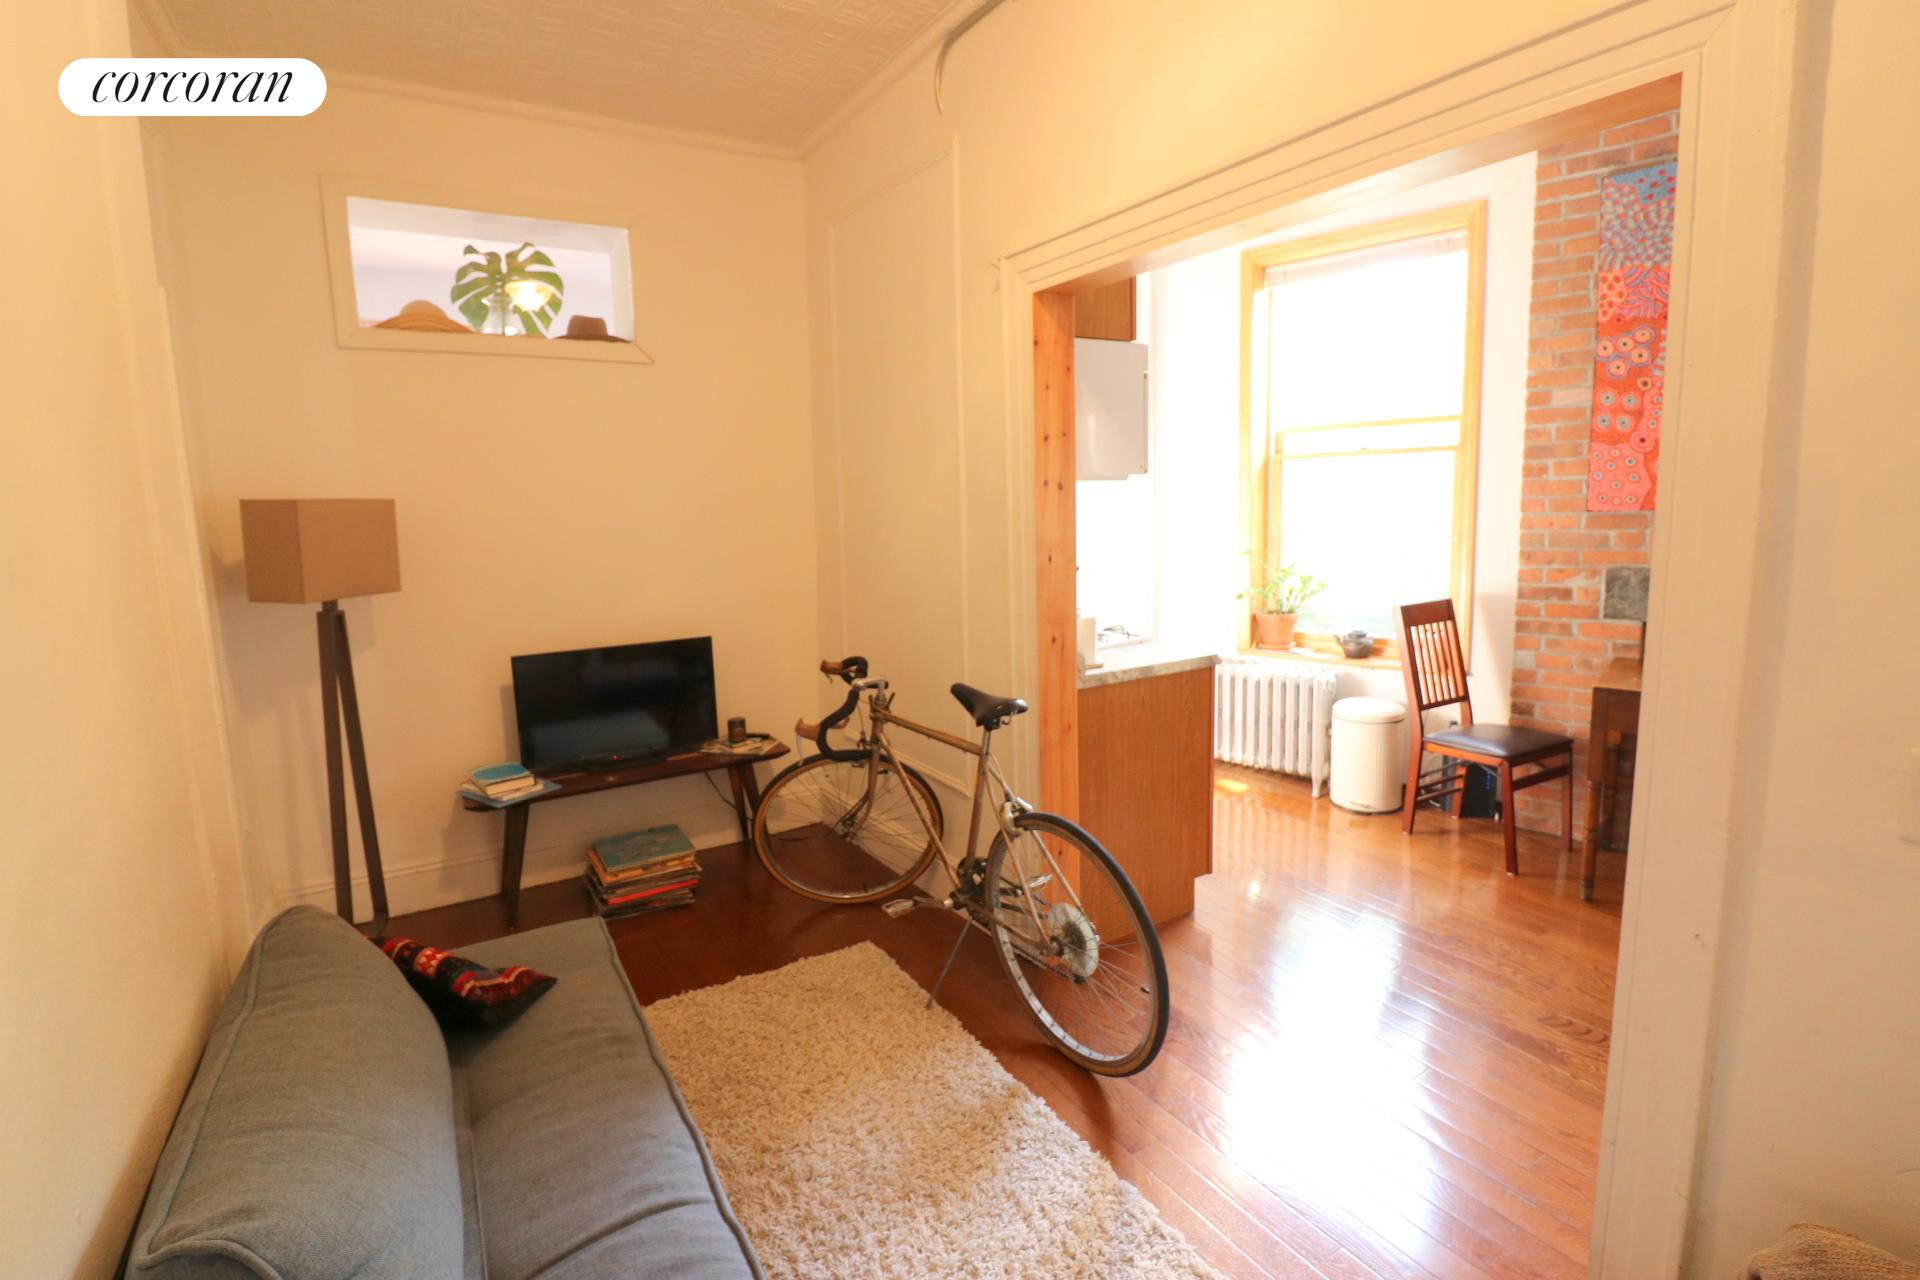 Beautiful and sunny 1 bedroom apartment on a quiet tree-lined Greenpoint block, right by the train. Spacious bedroom with 2 windows, great size kitchen/dining room, separate living/tv room. New hardwood floors, lots of natural light, exposed brick. Heat and hot water included, small pets ok. Available Asap This one will not last!